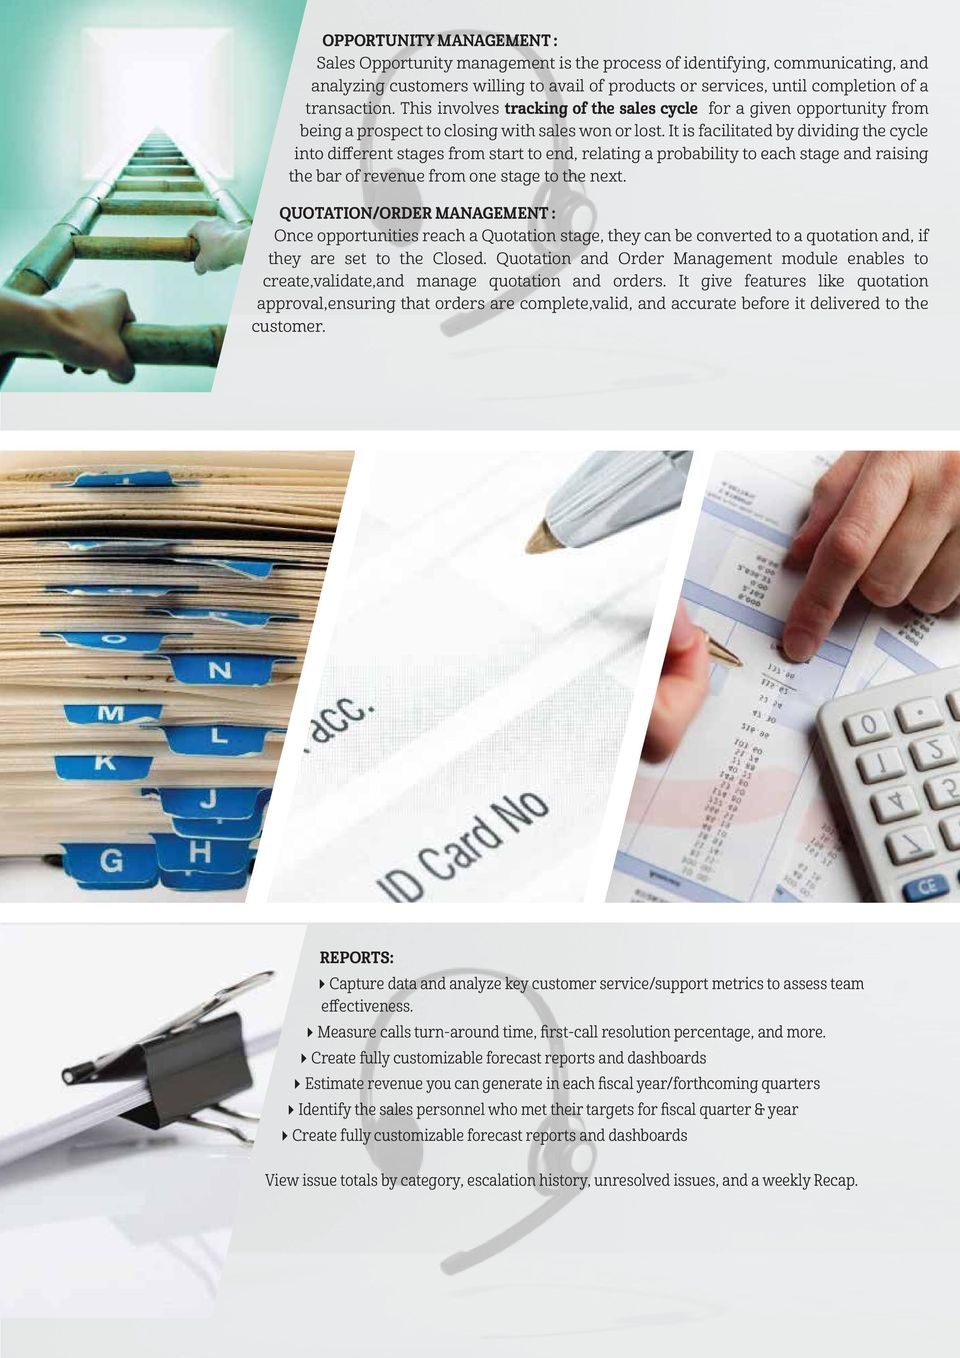 It is facilitated by dividing the cycle into different stages from start to end, relating a probability to each stage and raising the bar of revenue from one stage to the next.